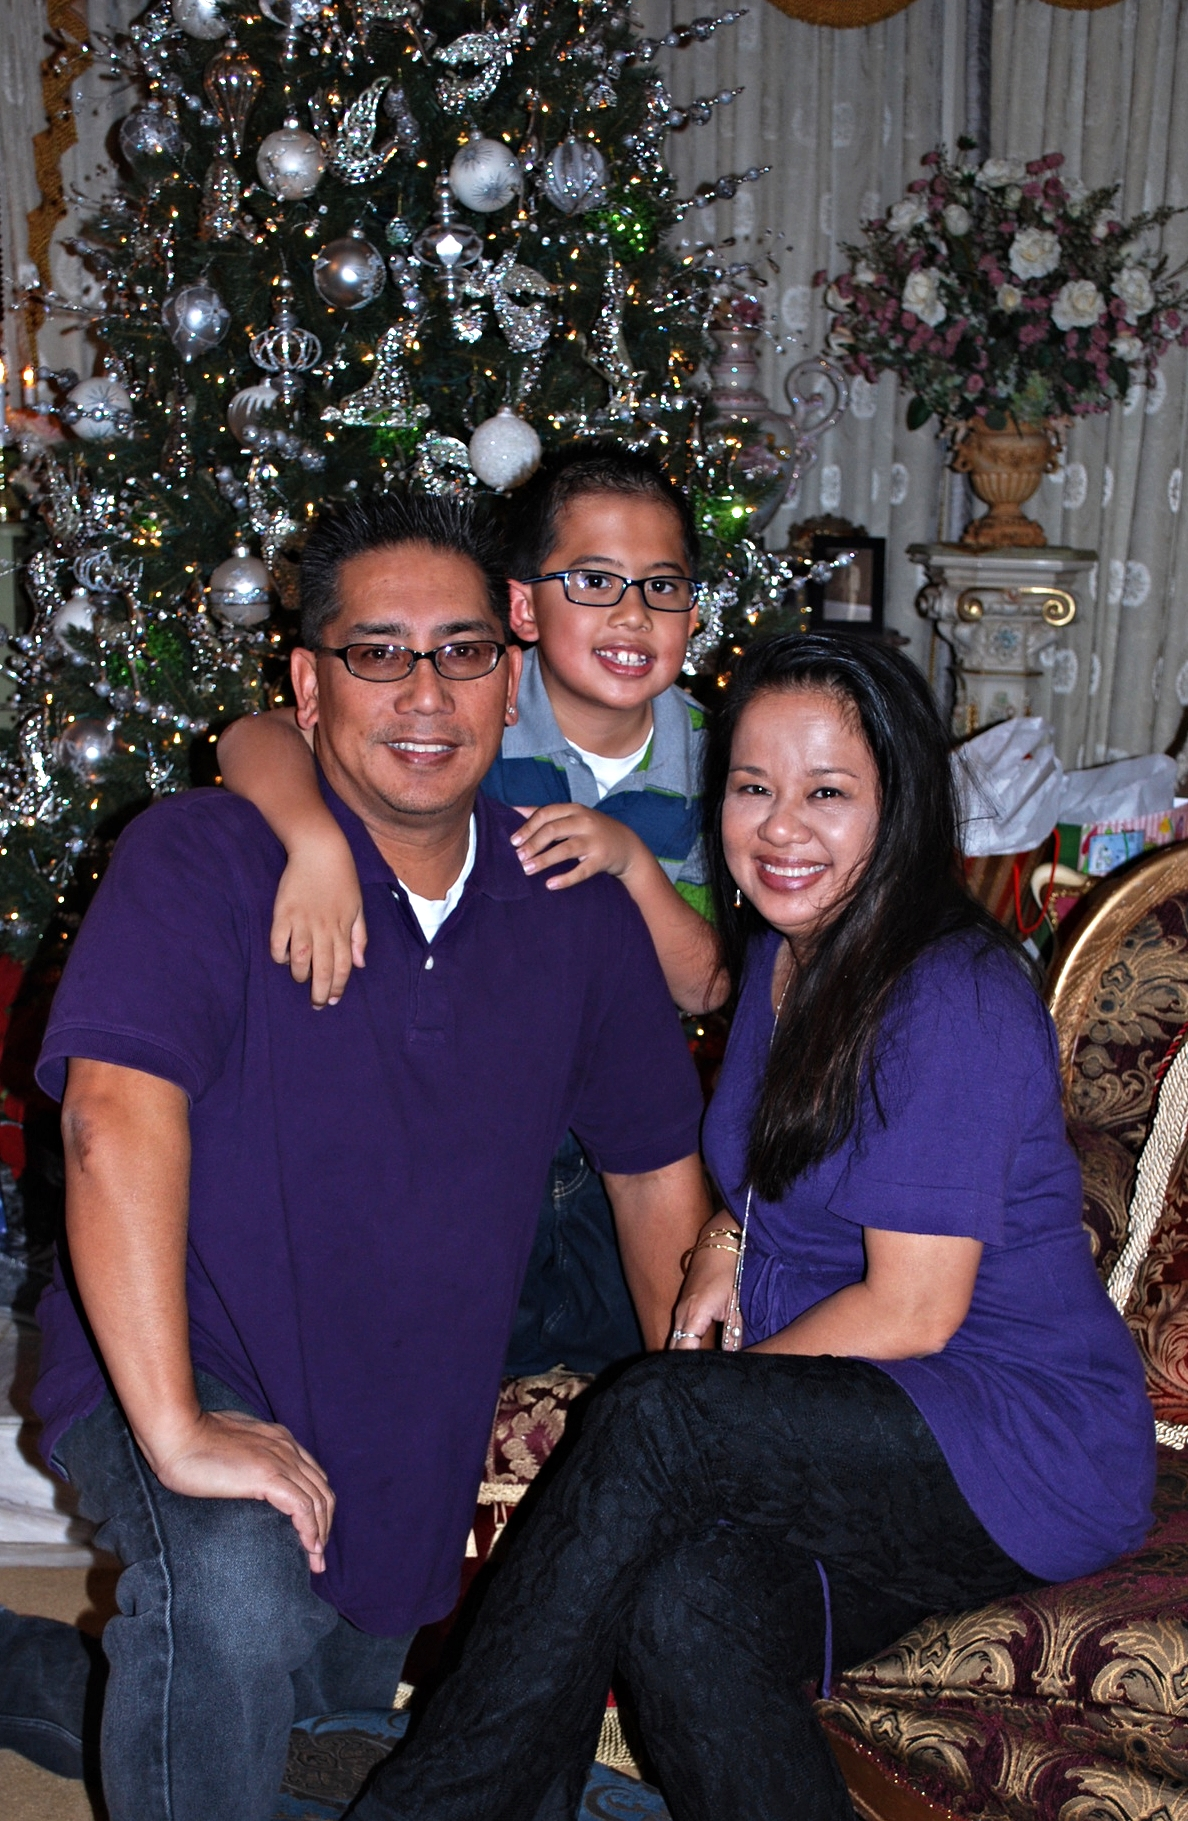 Left to Right: Bro. Robert, his son Evory, and wife Ana